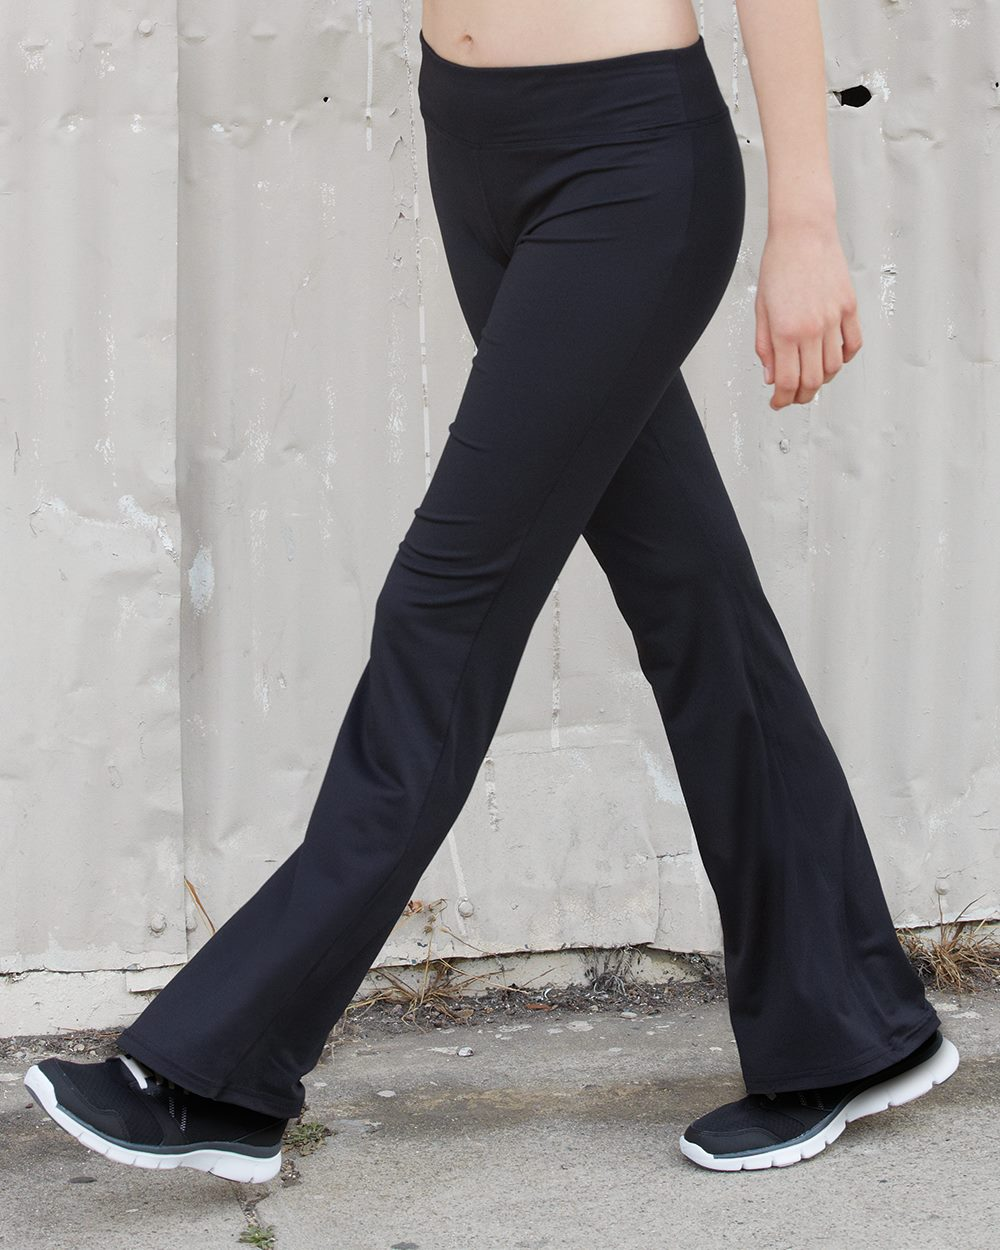 Nylon Spandex Yoga Pants - from $9.26